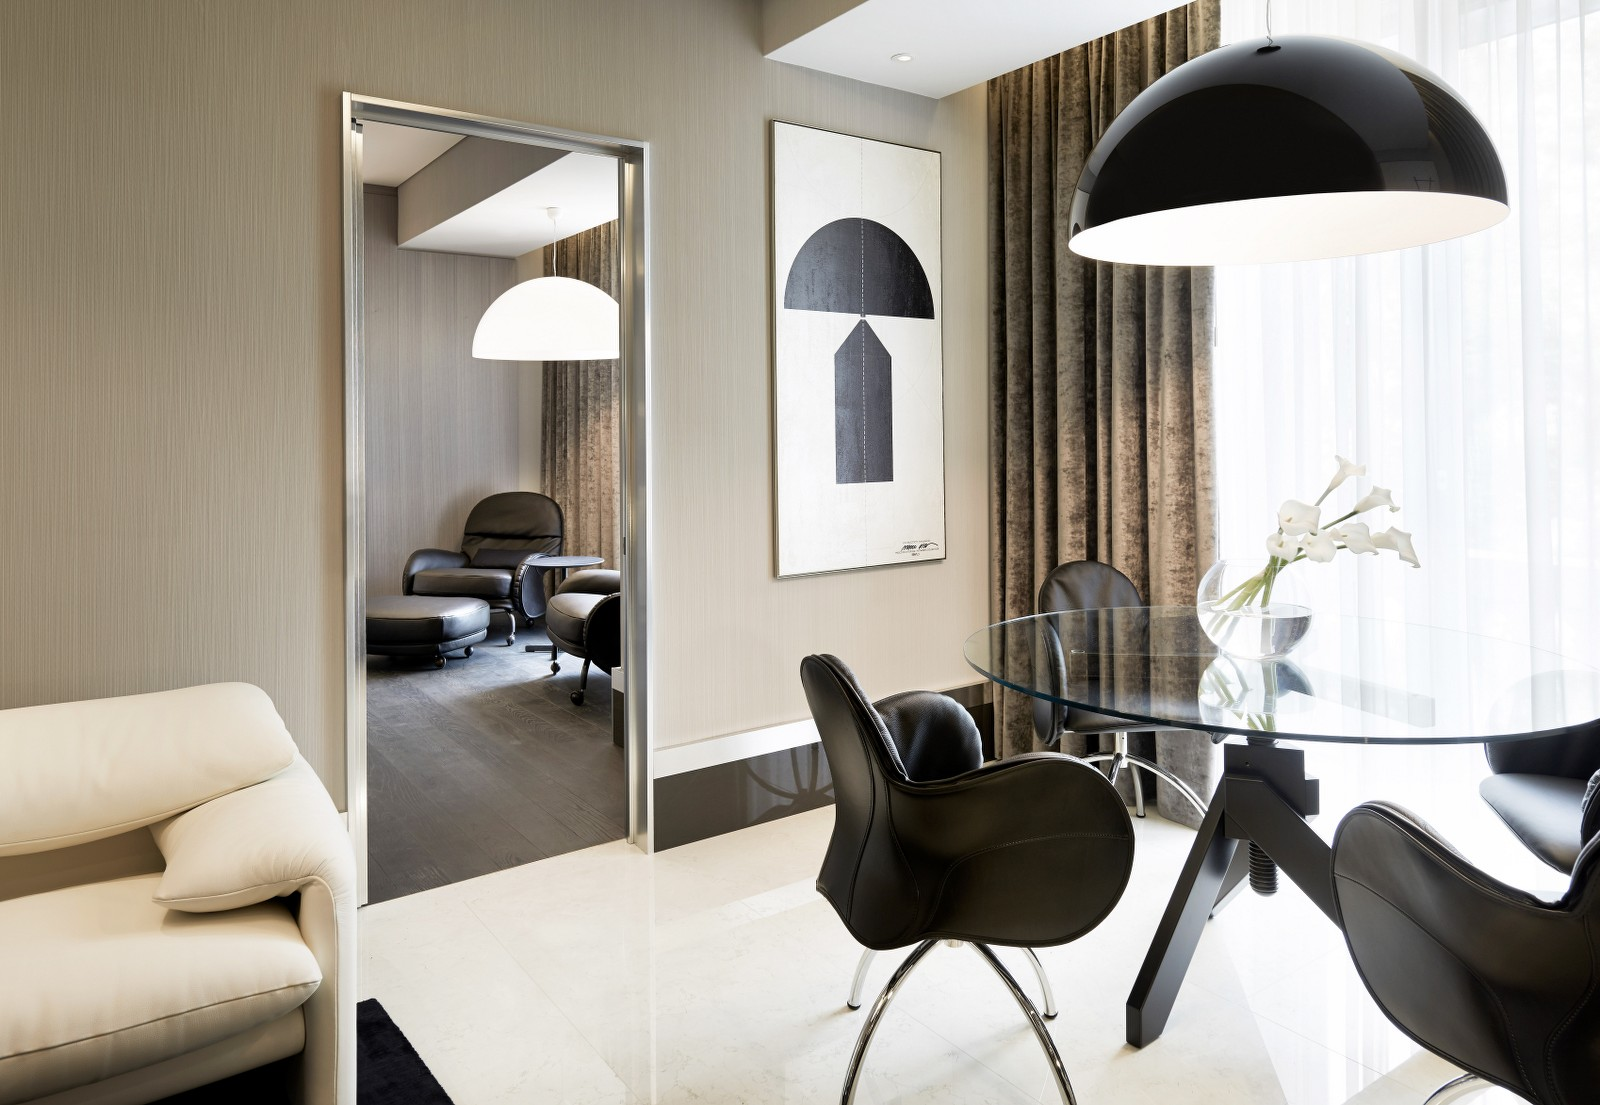 Excelsior hotel gallia milan a luxury collection for Hotel interior design